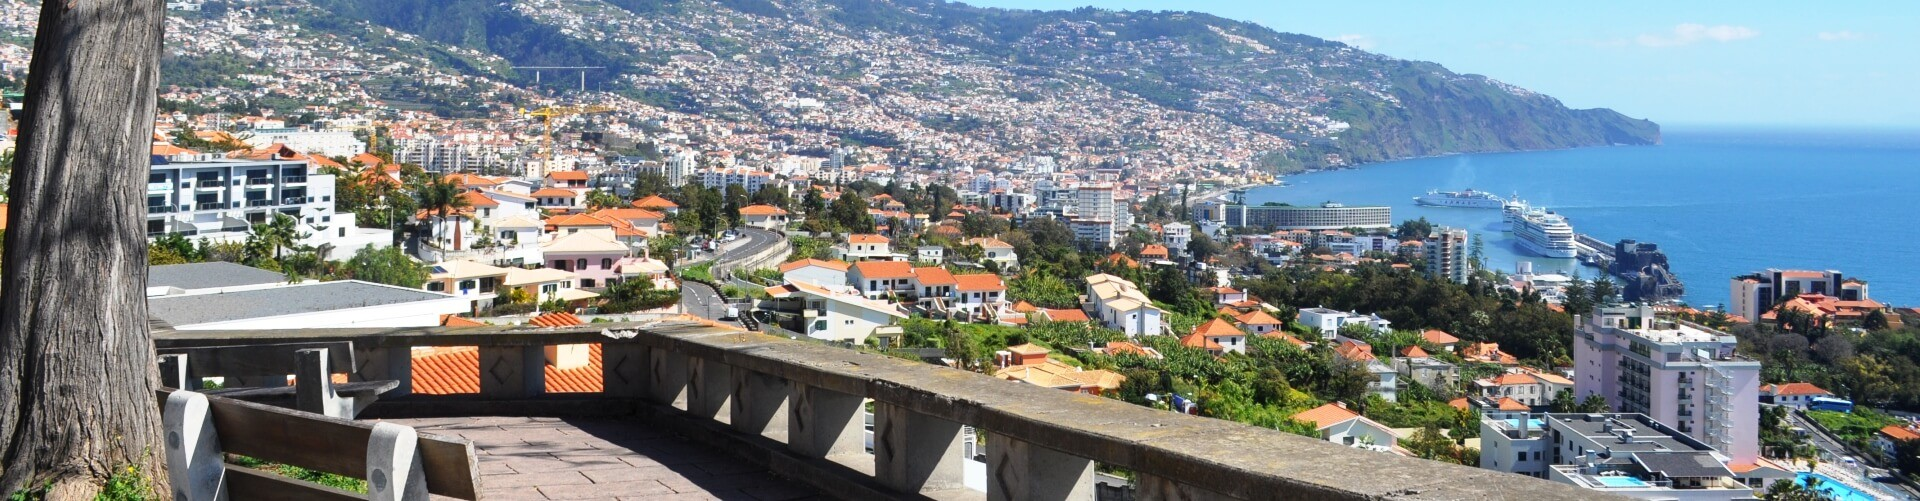 Funchal Tour Hop On Hop Off Sightseeing Bus